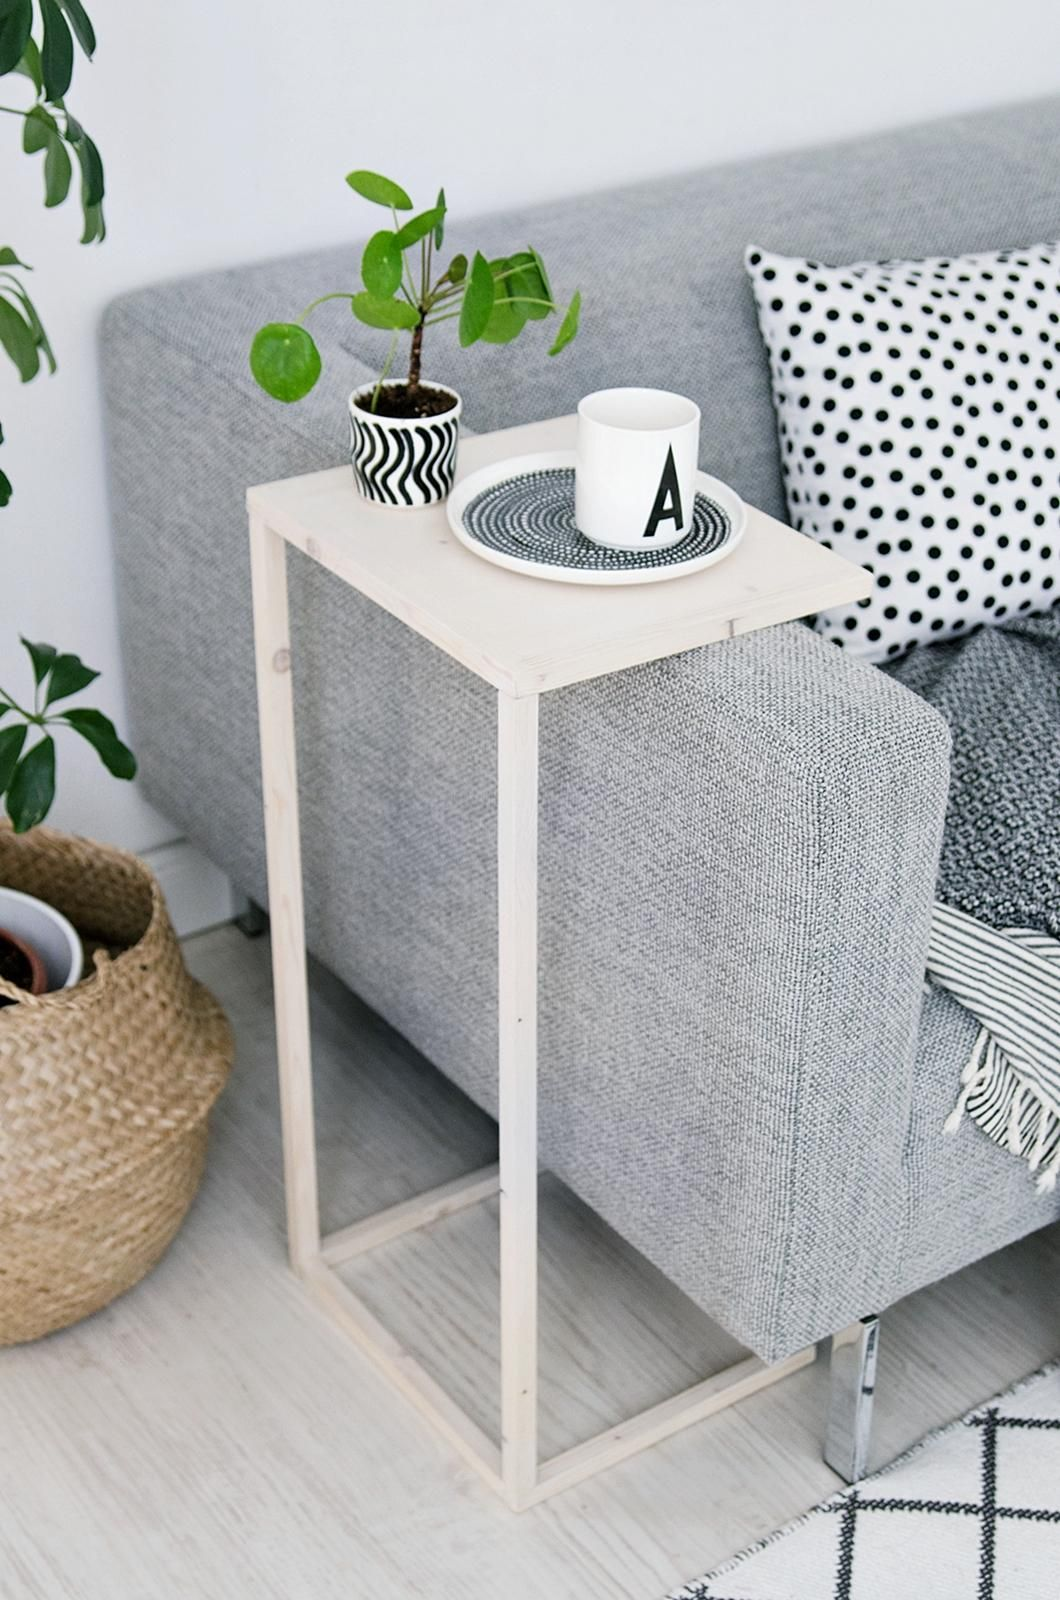 astounding slim space accent table for gold and saver round outdoor saving decor tables target mini room farmhouse shades top living ideas redmond lighting plus lamp small full